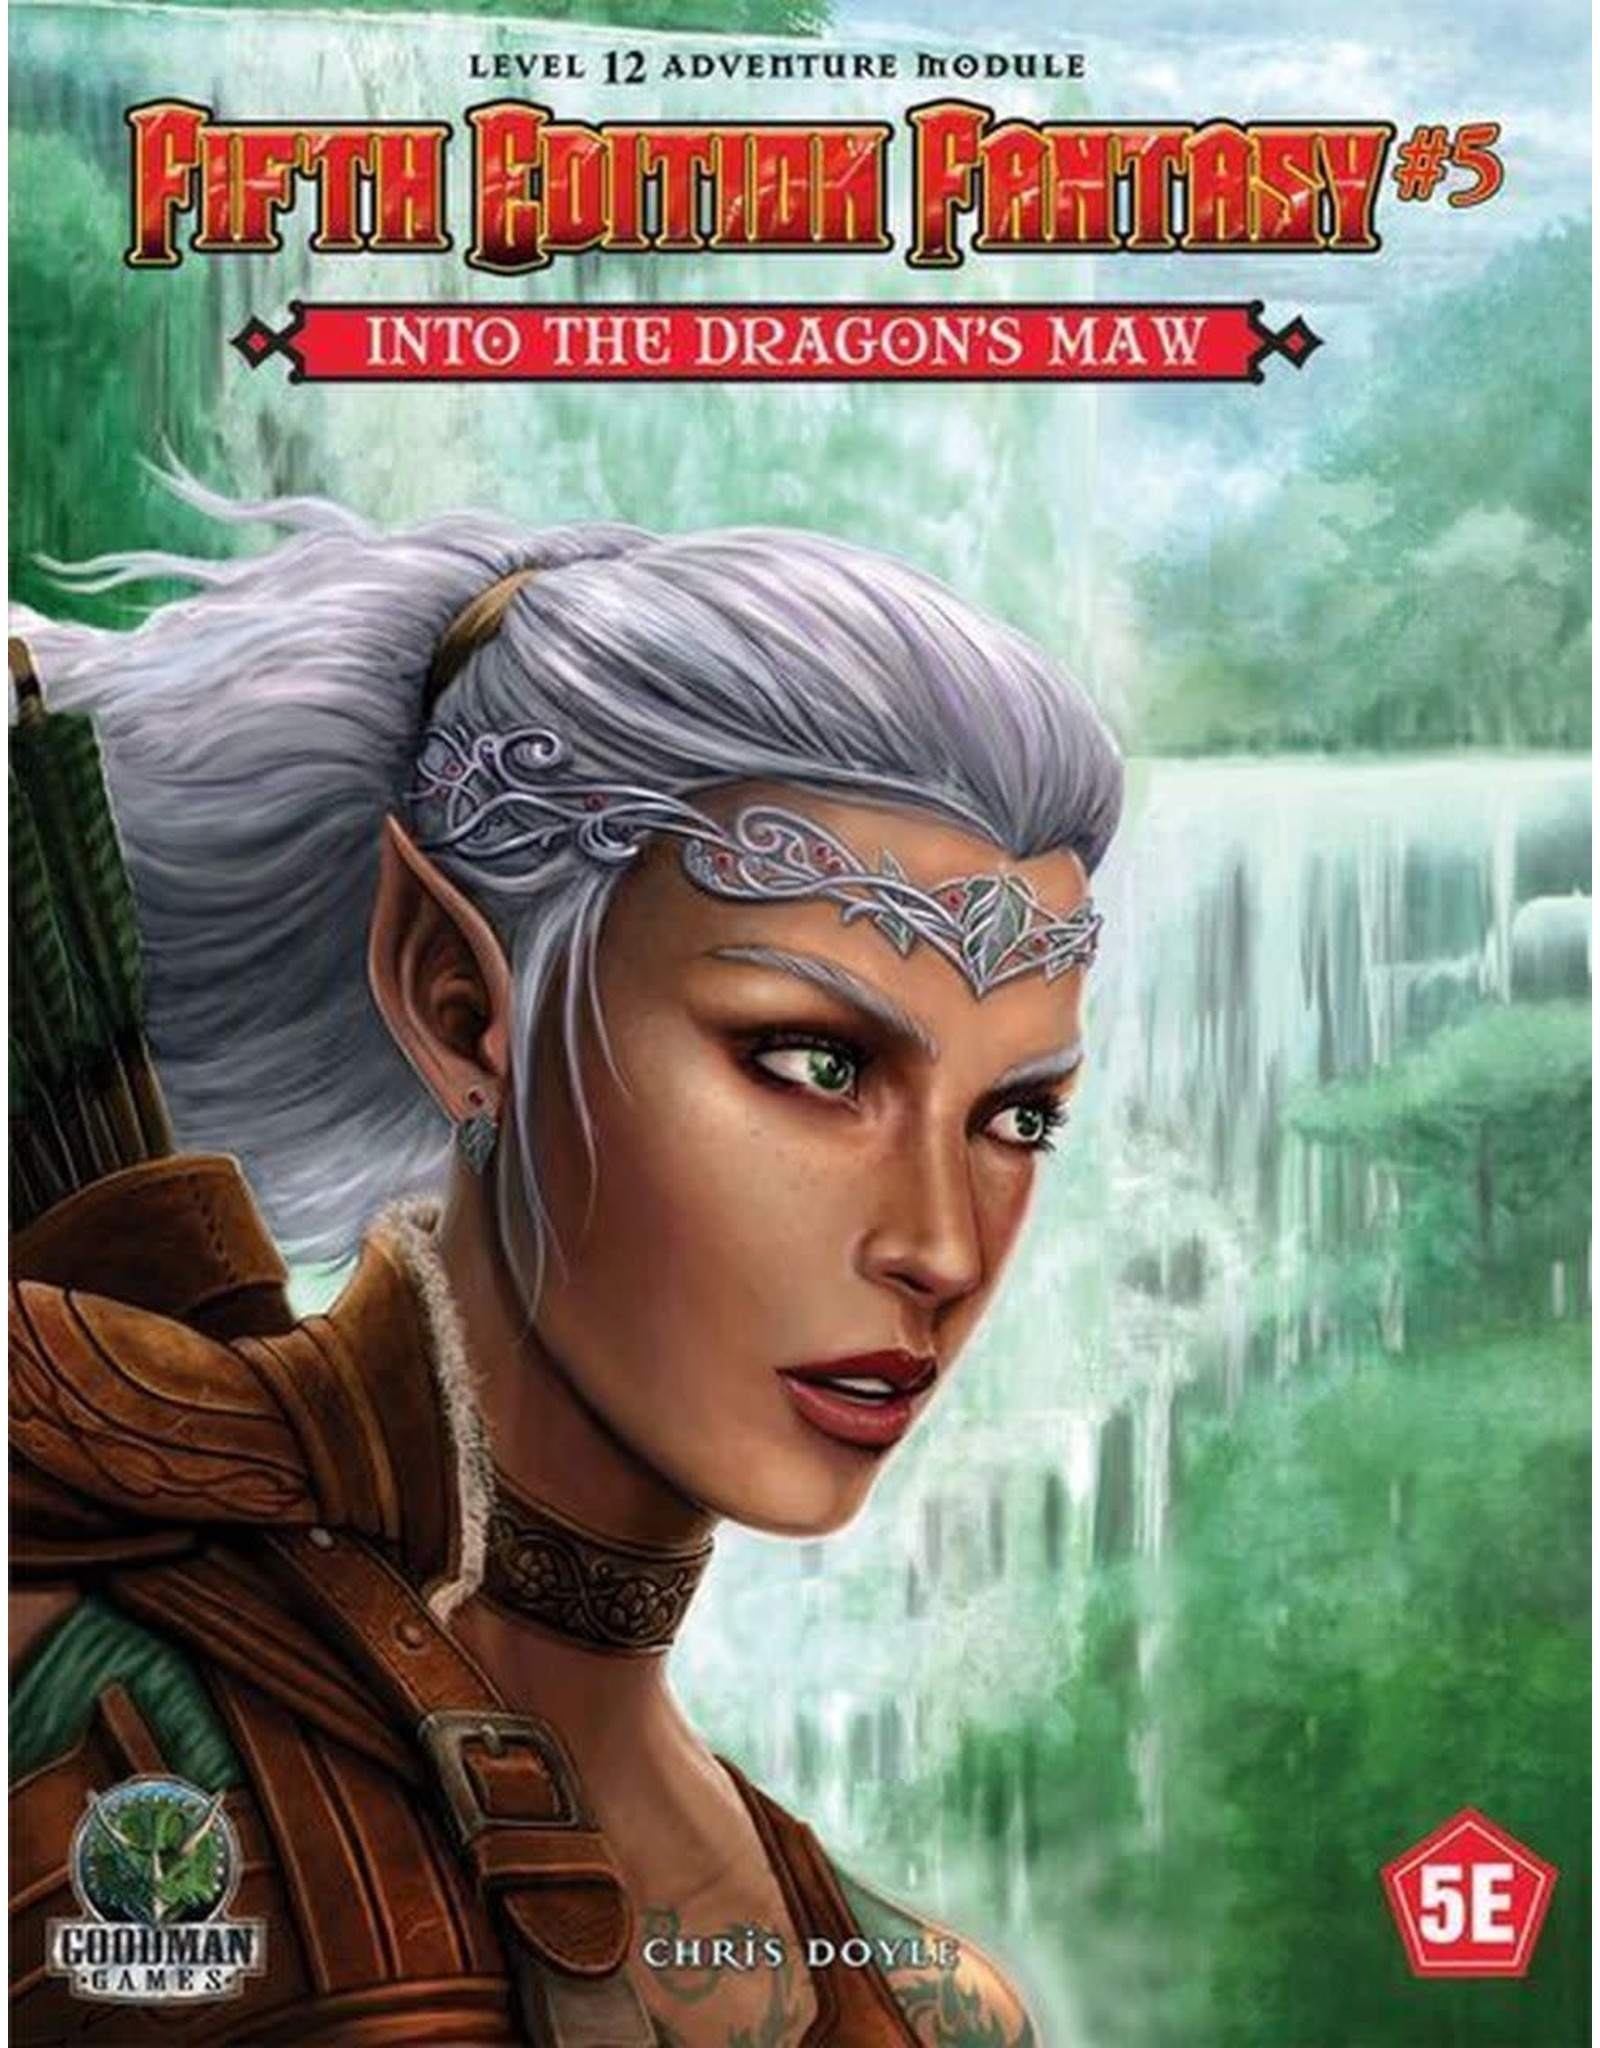 Goodman Games 5th Ed. Fantasy 5: Into the Dragon's Maw